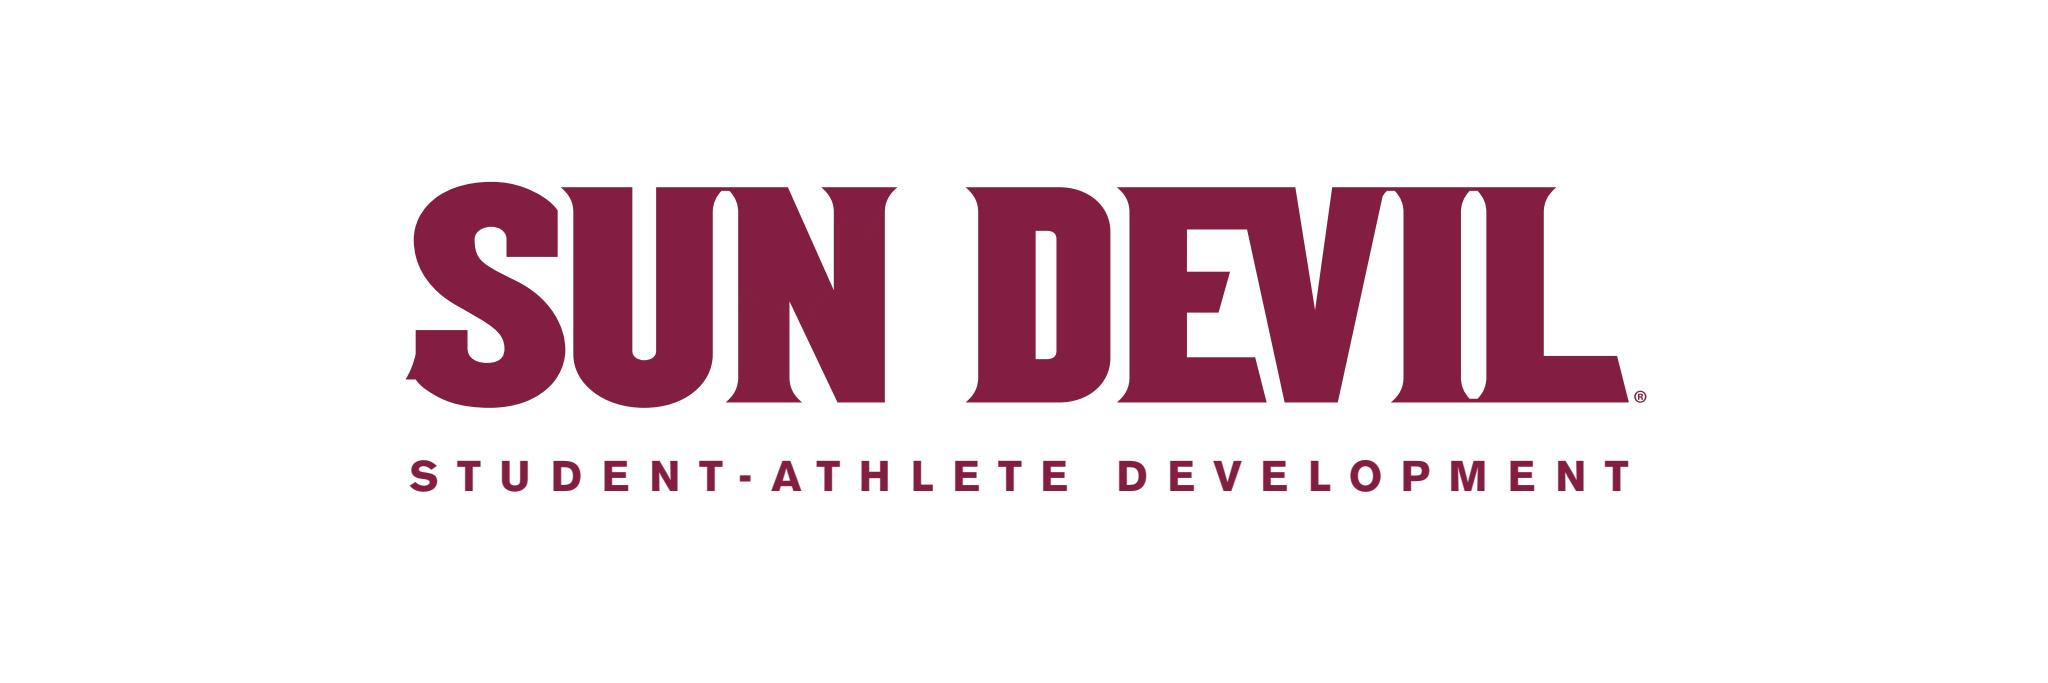 'Whether on the court, on the field or in the classroom, student-athletes at Arizona State University compete to be… https://t.co/6s7Xbq6rcT